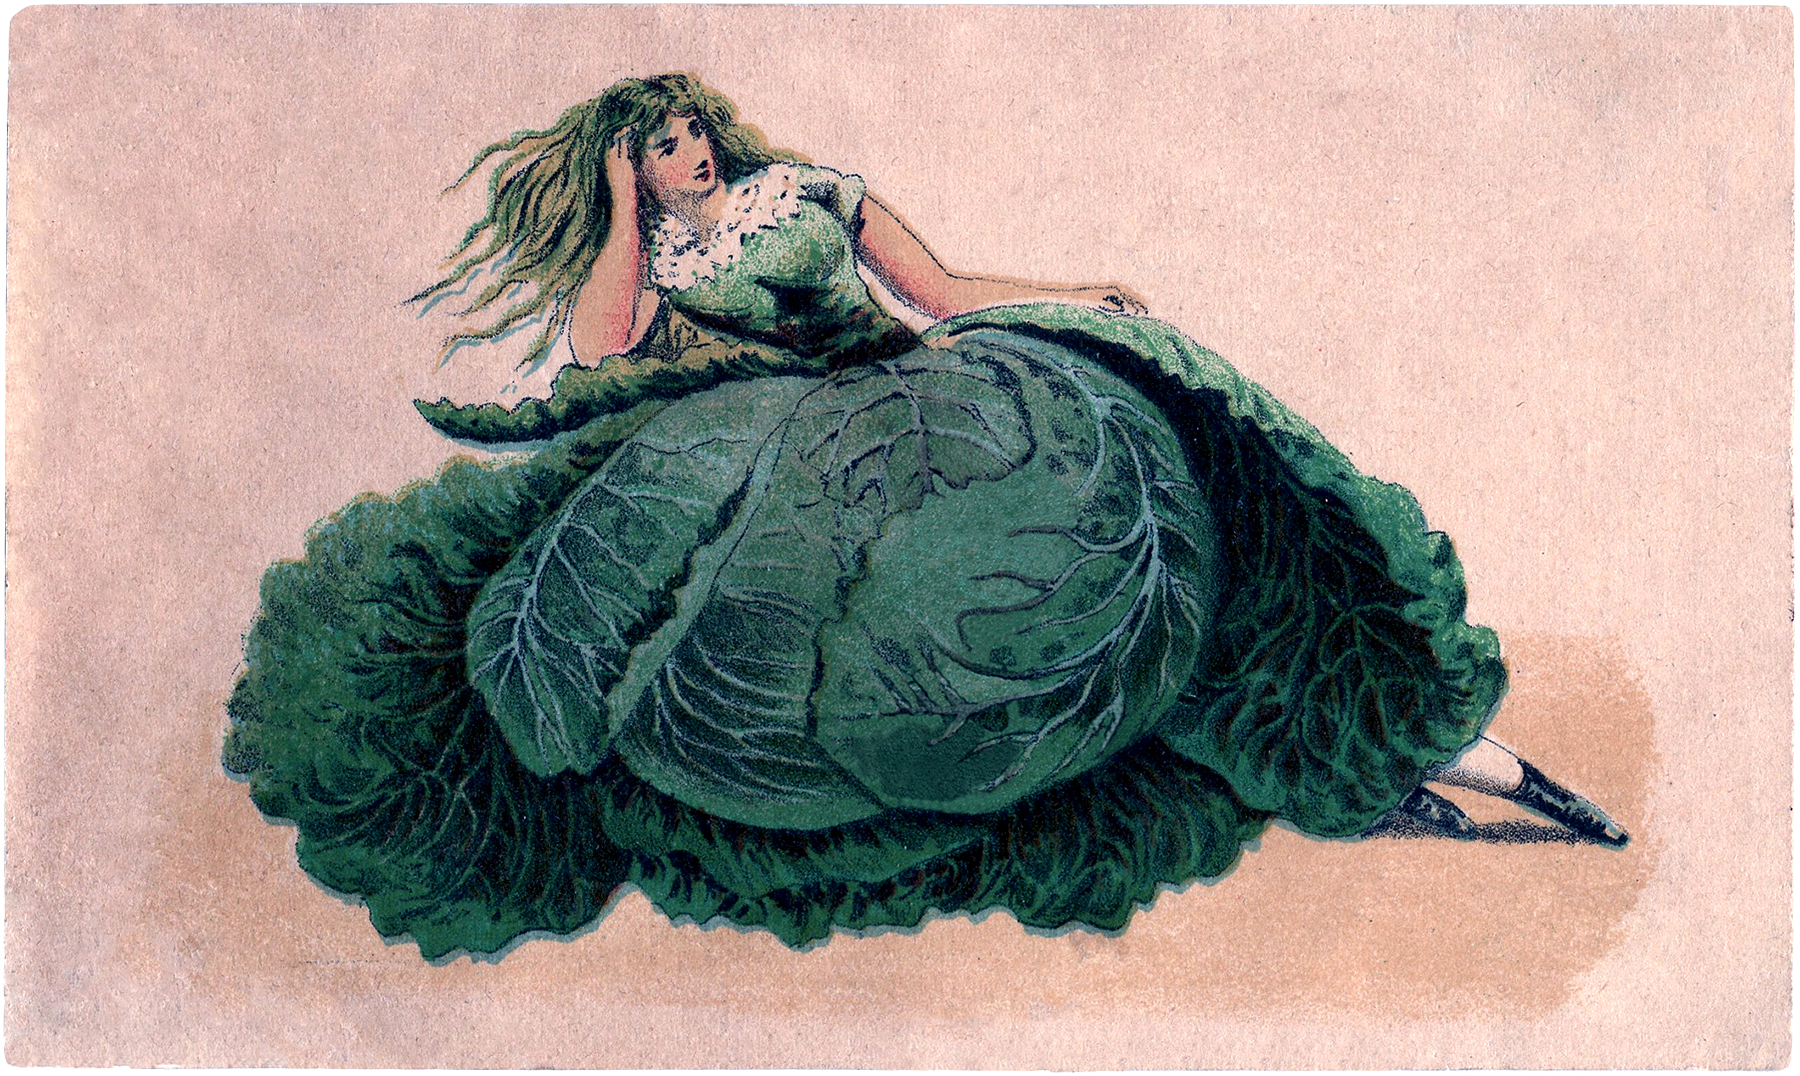 Vintage Cabbage Lady Image The Graphics Fairy